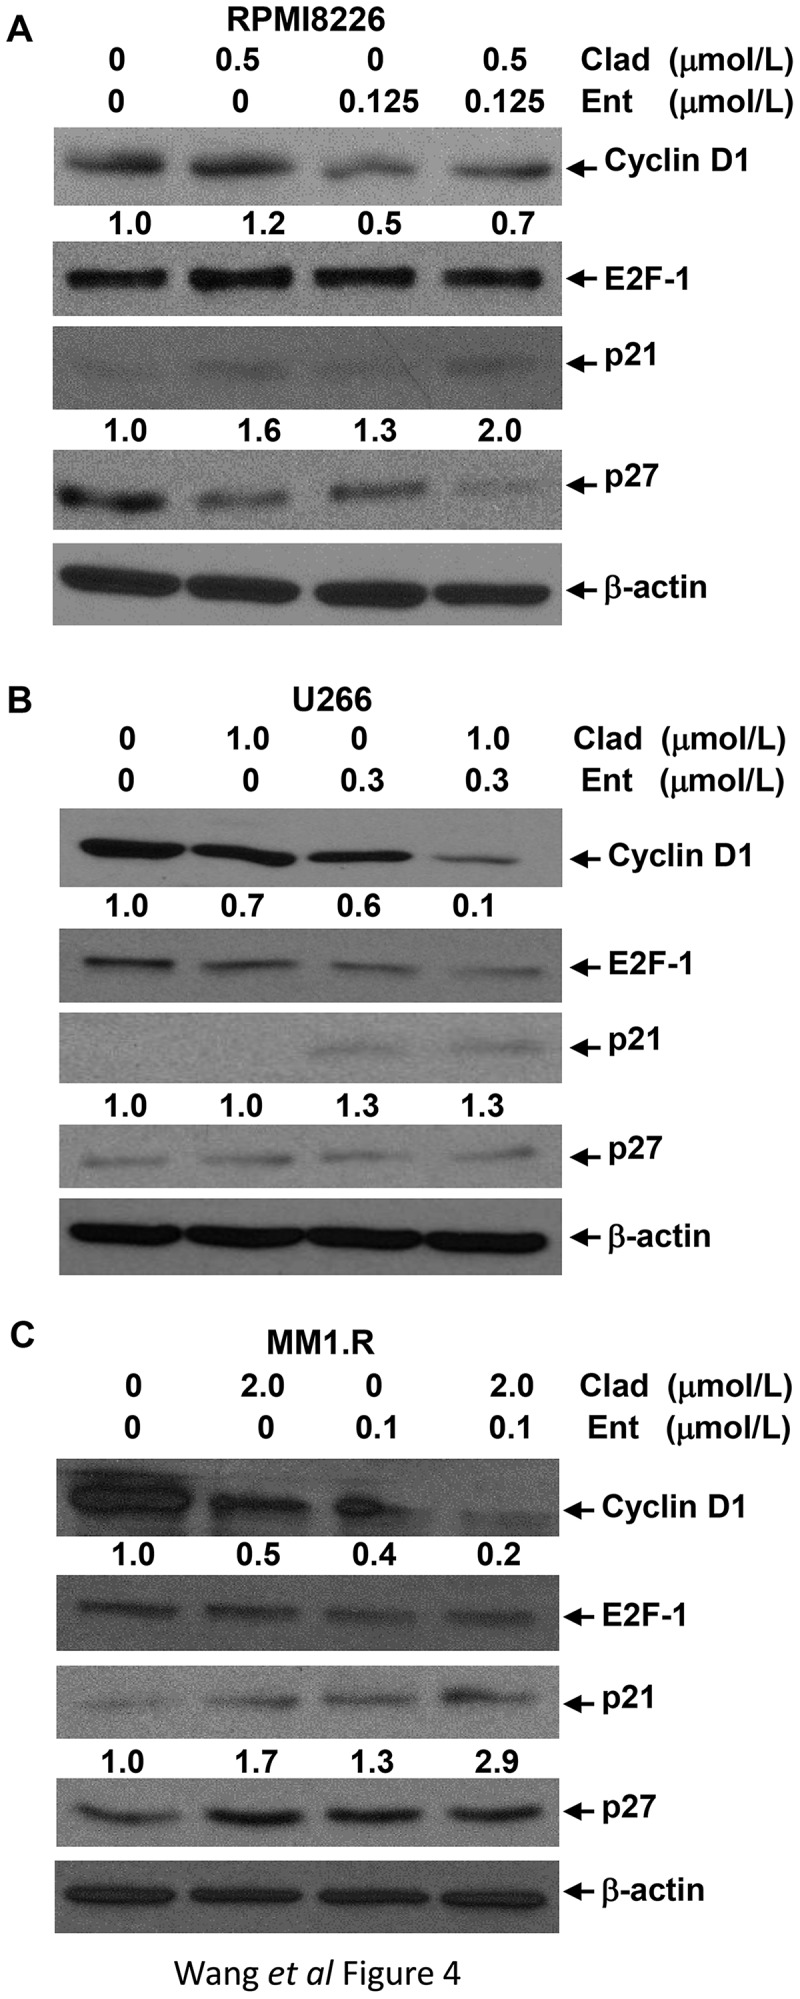 The combinations of cladribine and entinostat markedly alter expression of several key molecular markers critical for G1-S transition. MM cells were cultured with RPMI1640 (2.5% FBS) in the absence or presence of entinostat (Ent), cladribine (Clad) alone or their combinations for 48 hrs. Cells were collected and subjected to western blot analyses with specific antibody directed against Cyclin D1, E2F-1, p21 waf−1 , p27 kip−1 , or β-actin. The densitometry analyses of p21 waf-1 and Cyclin D1 signals are shown underneath, and the arbitrary numbers indicate the intensities of each cell line relative to controls, defined as 1.0. (a) RPMI8226; (b) U226; (c) MM1.R.